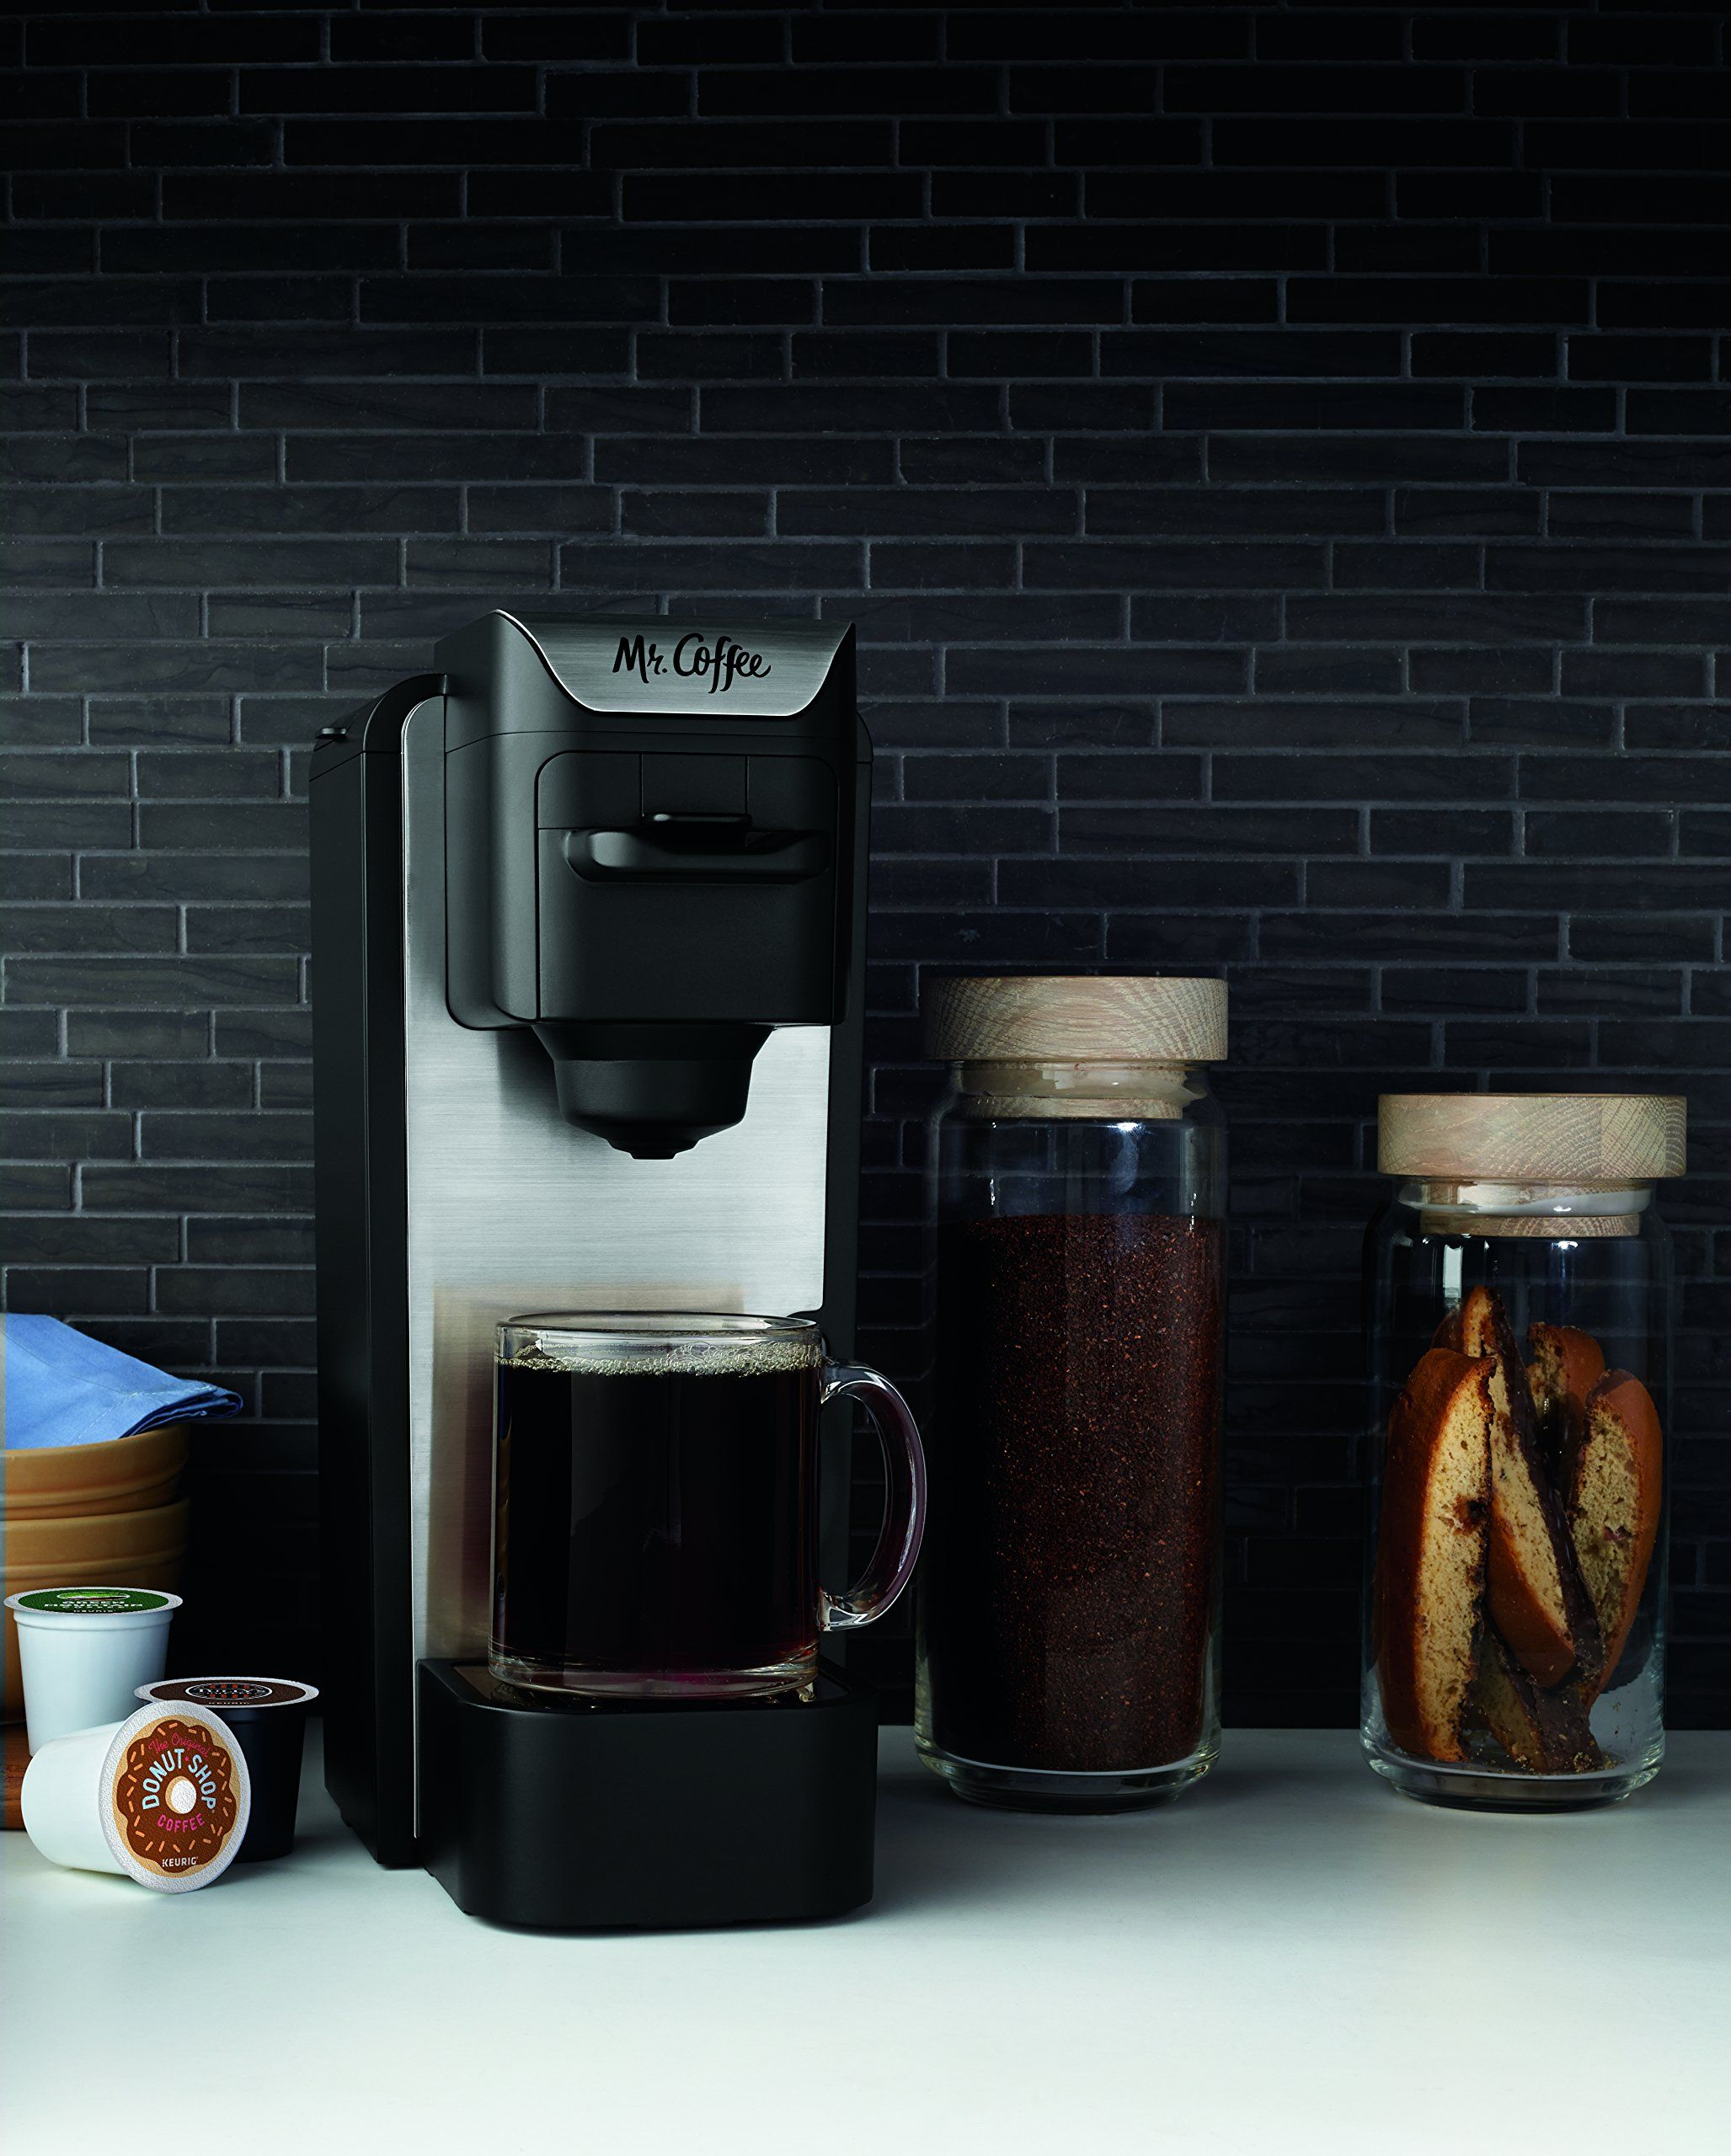 Mr Coffee Bvmcsc1002 Singleserve Coffee Maker Black With Silver